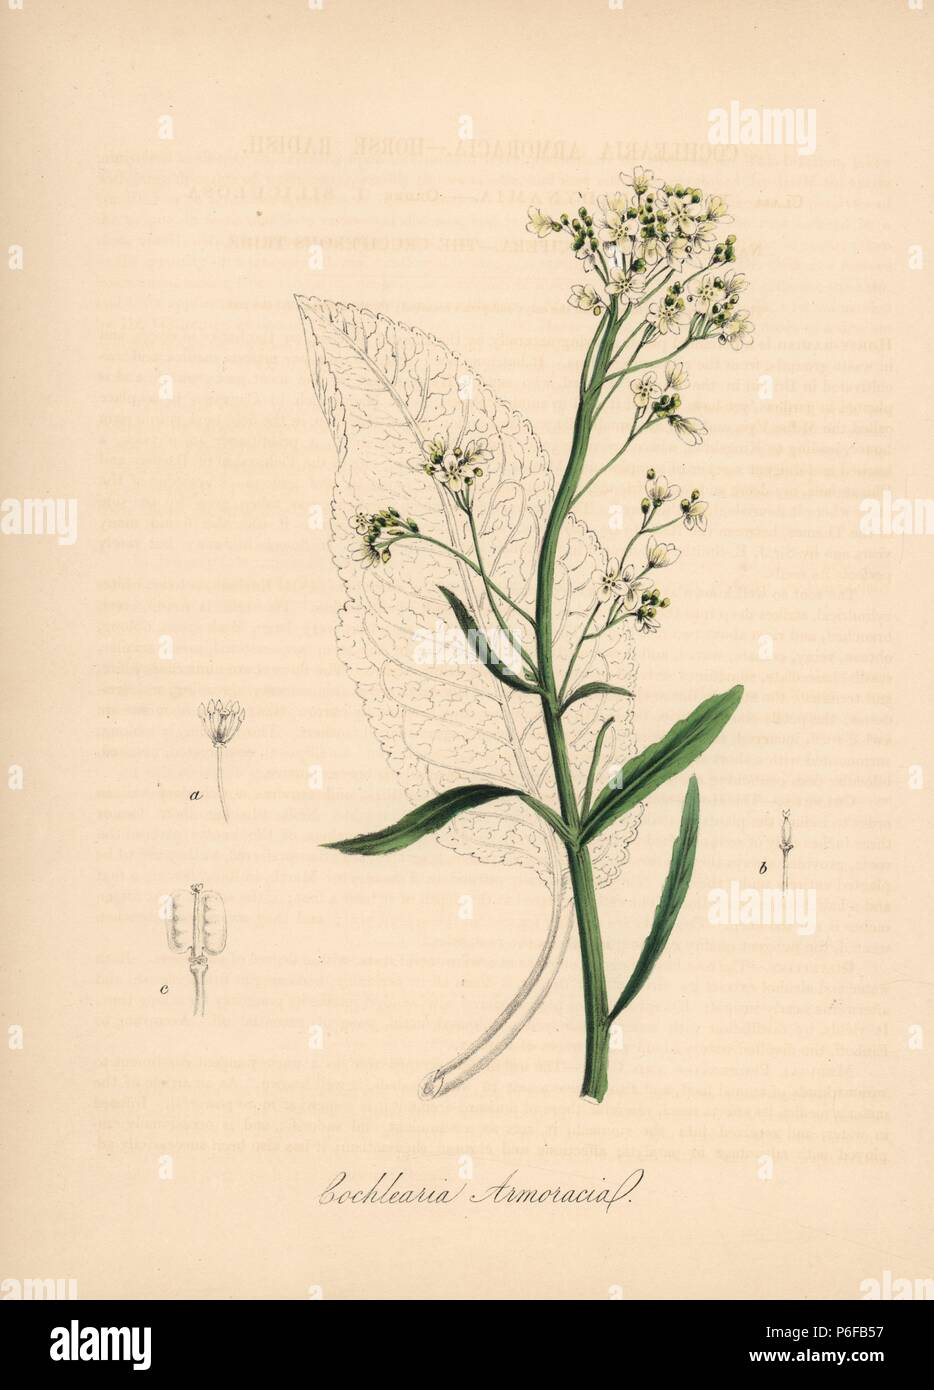 Horseradish, Cochlearia armoracia. Handcoloured zincograph by C. Chabot drawn by Miss M. A. Burnett from her 'Plantae Utiliores: or Illustrations of Useful Plants,' Whittaker, London, 1842. Miss Burnett drew the botanical illustrations, but the text was chiefly by her late brother, British botanist Gilbert Thomas Burnett (1800-1835). - Stock Image